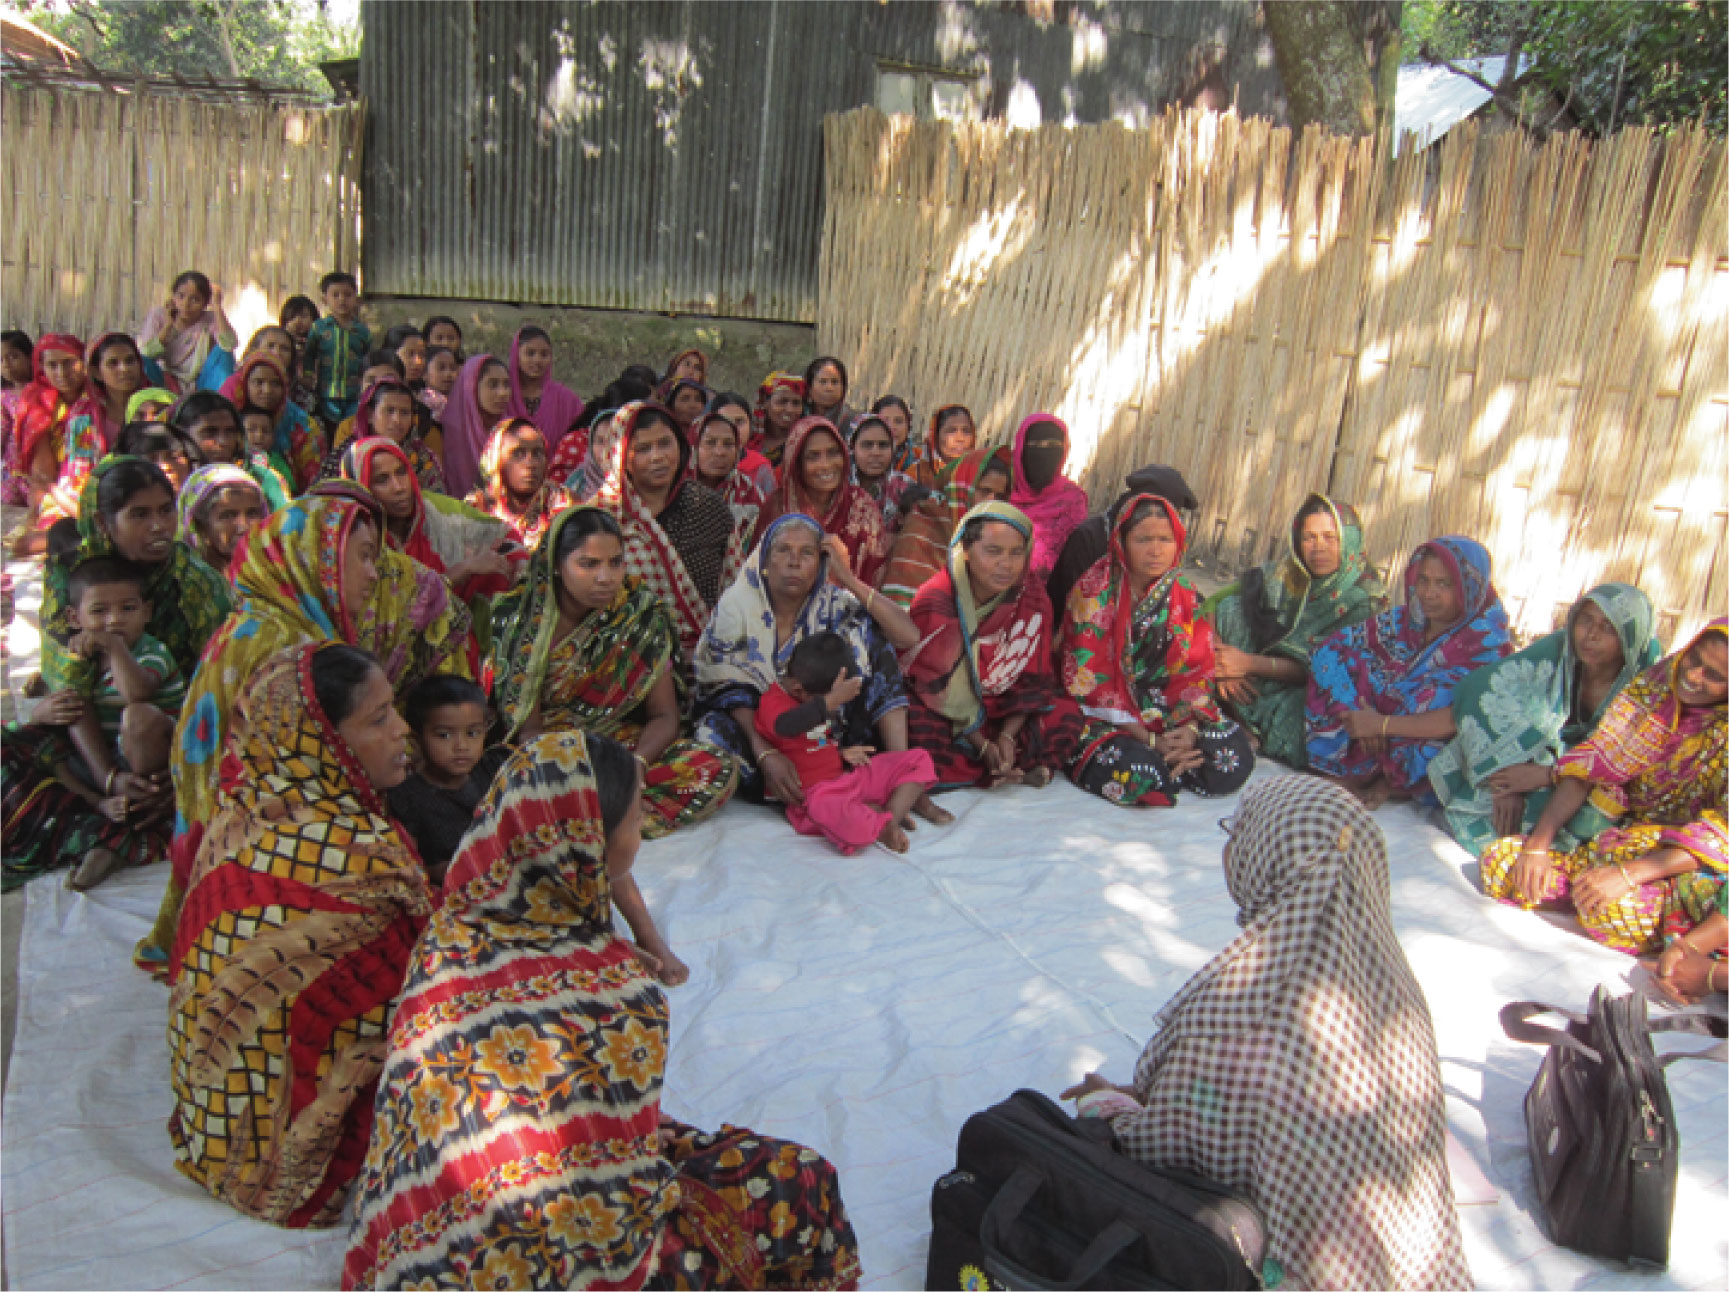 Deconstructing diets and diabetes in rural Bangladesh